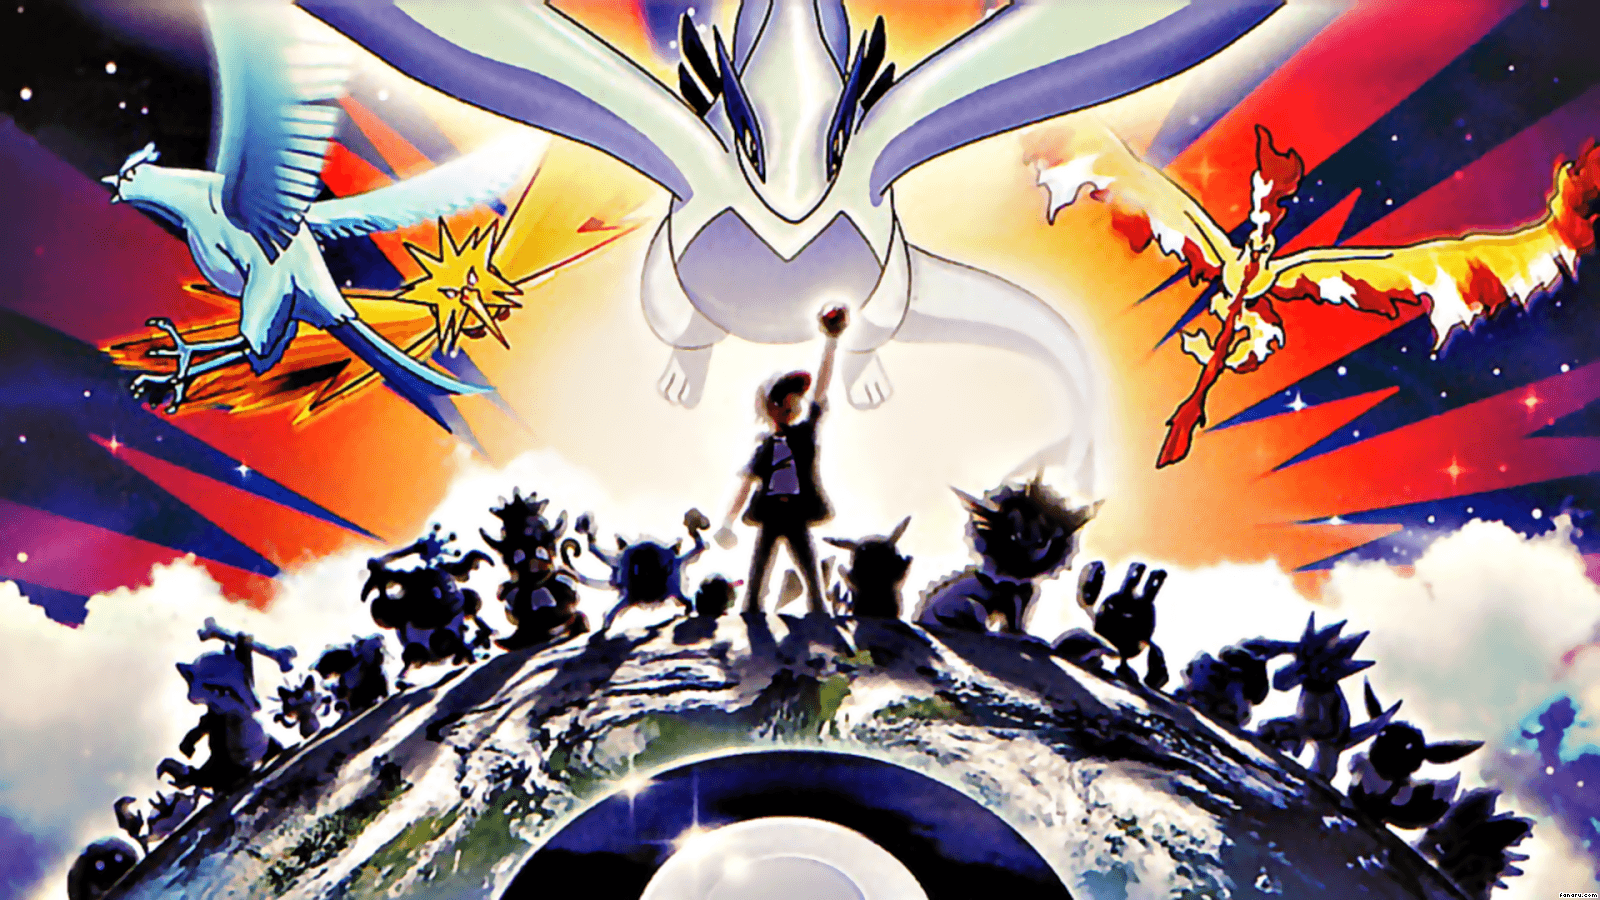 Backgrounds For Highres Wallpaper Pokemon Legendary In Image With Hd